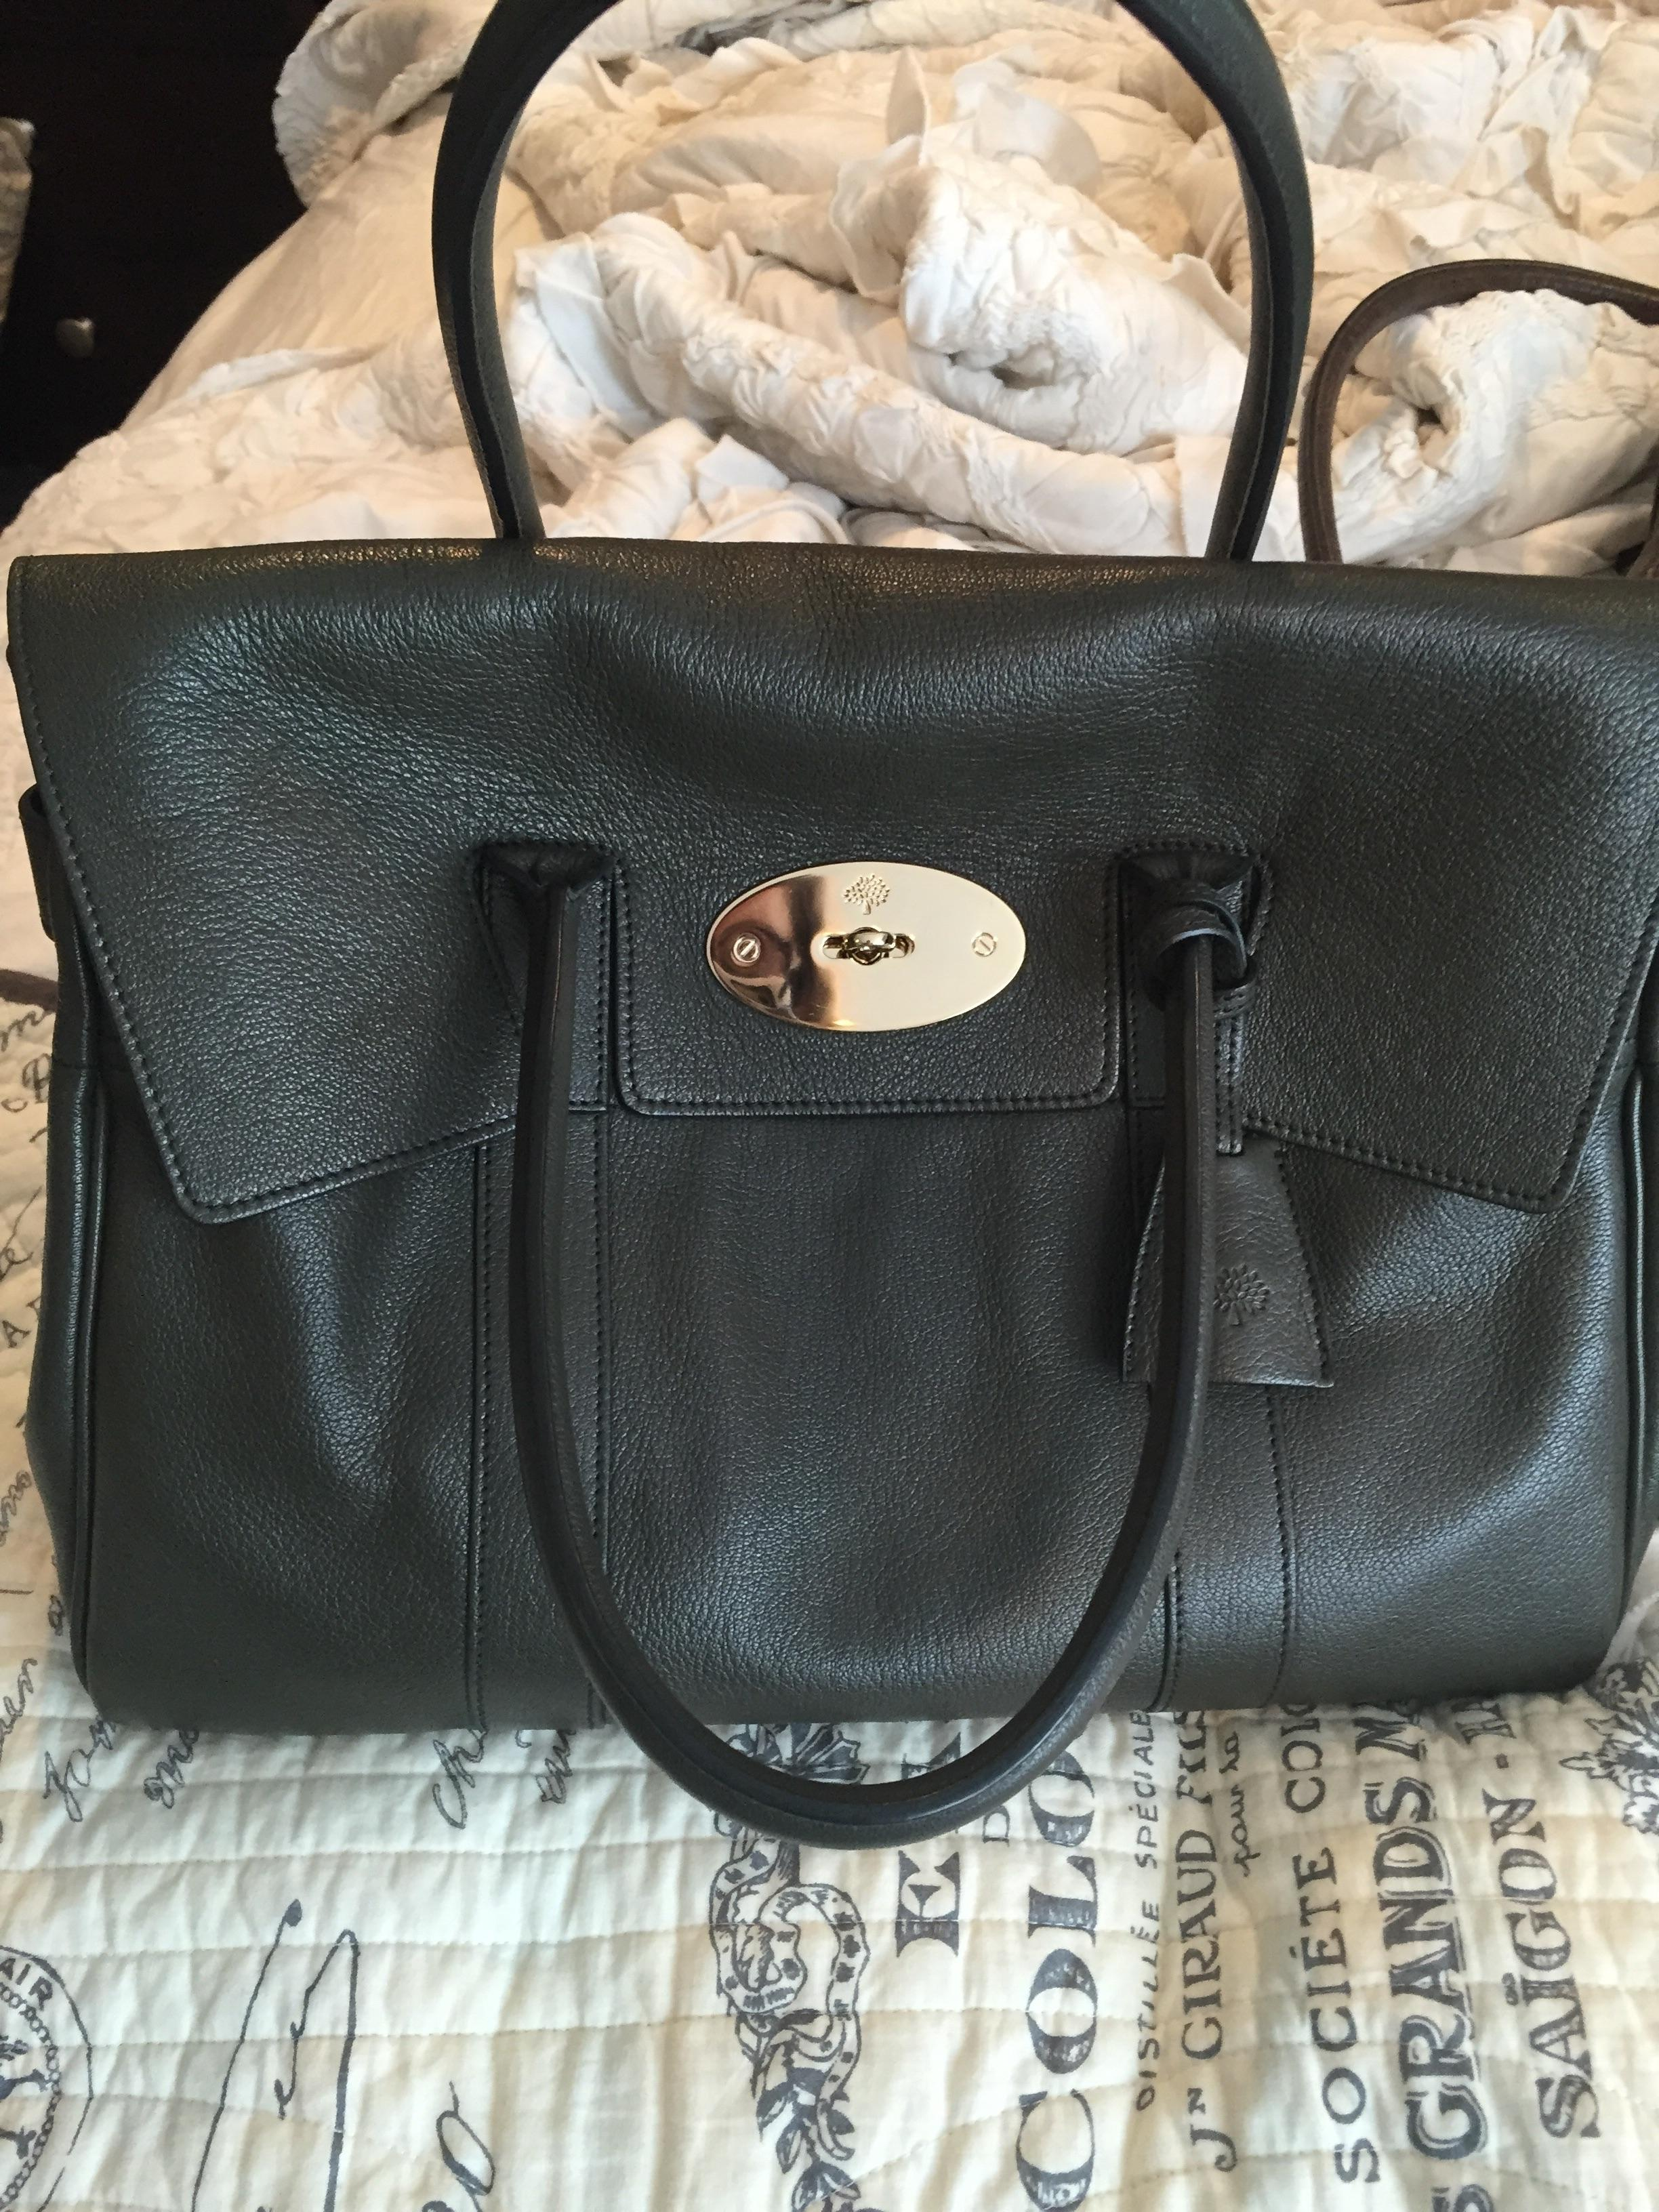 35f40d4c7d0d ... soft nappa aa3ca 9cc5d where can i buy mulberry dorset tote black forest  green cc244 3a284 coupon for mulberry bayswater satchel in forest green.